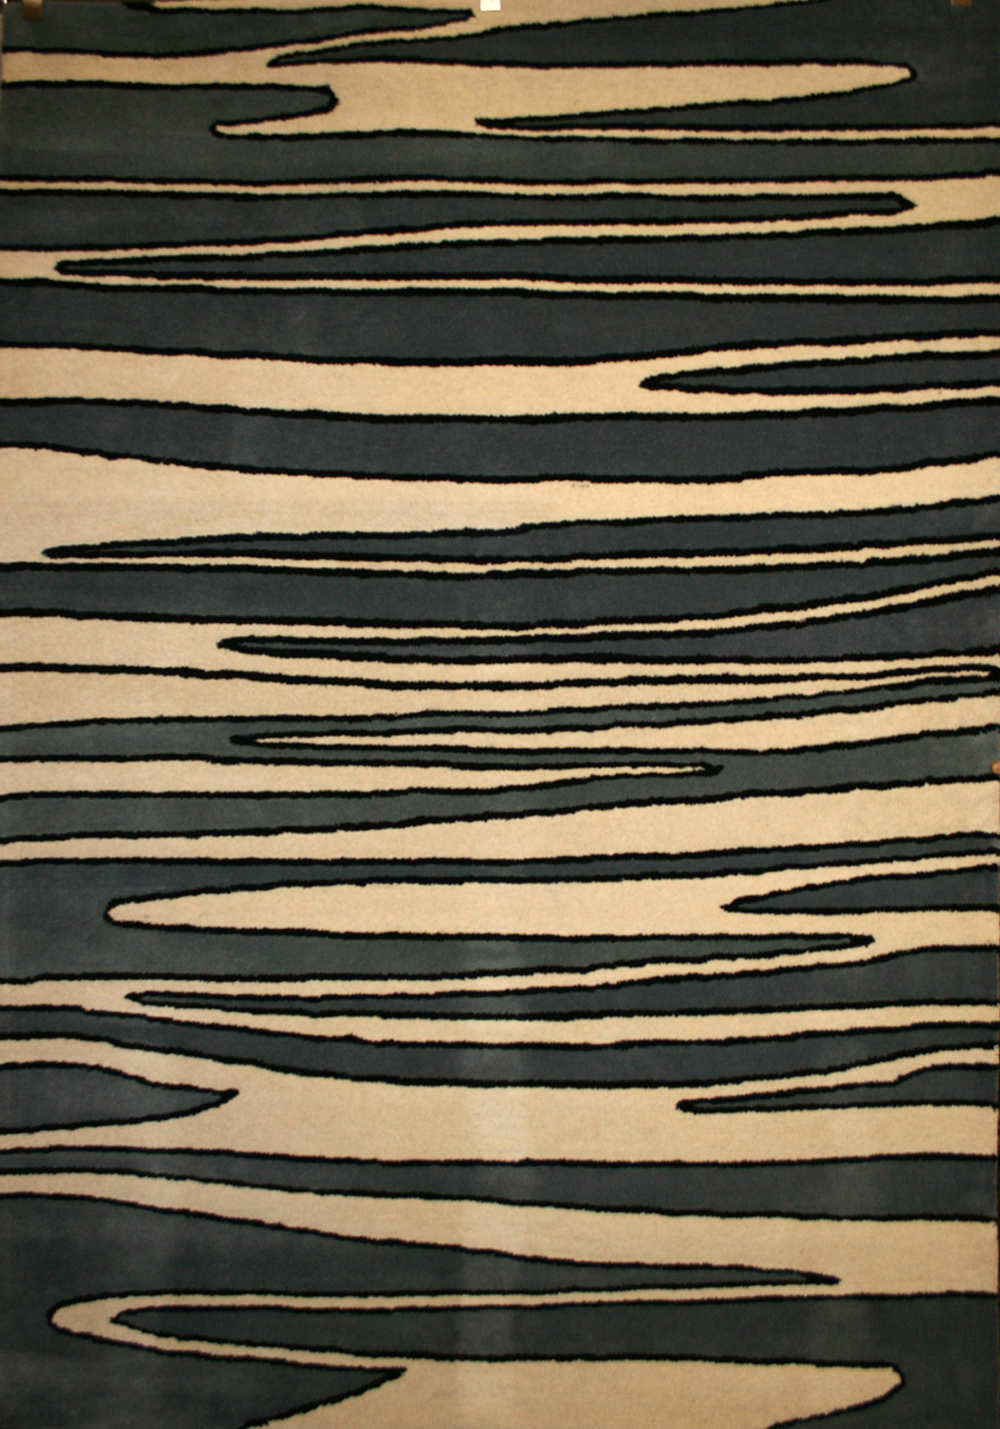 Love-Rugs Camo 02 Rug - Modern Hand-Tufted